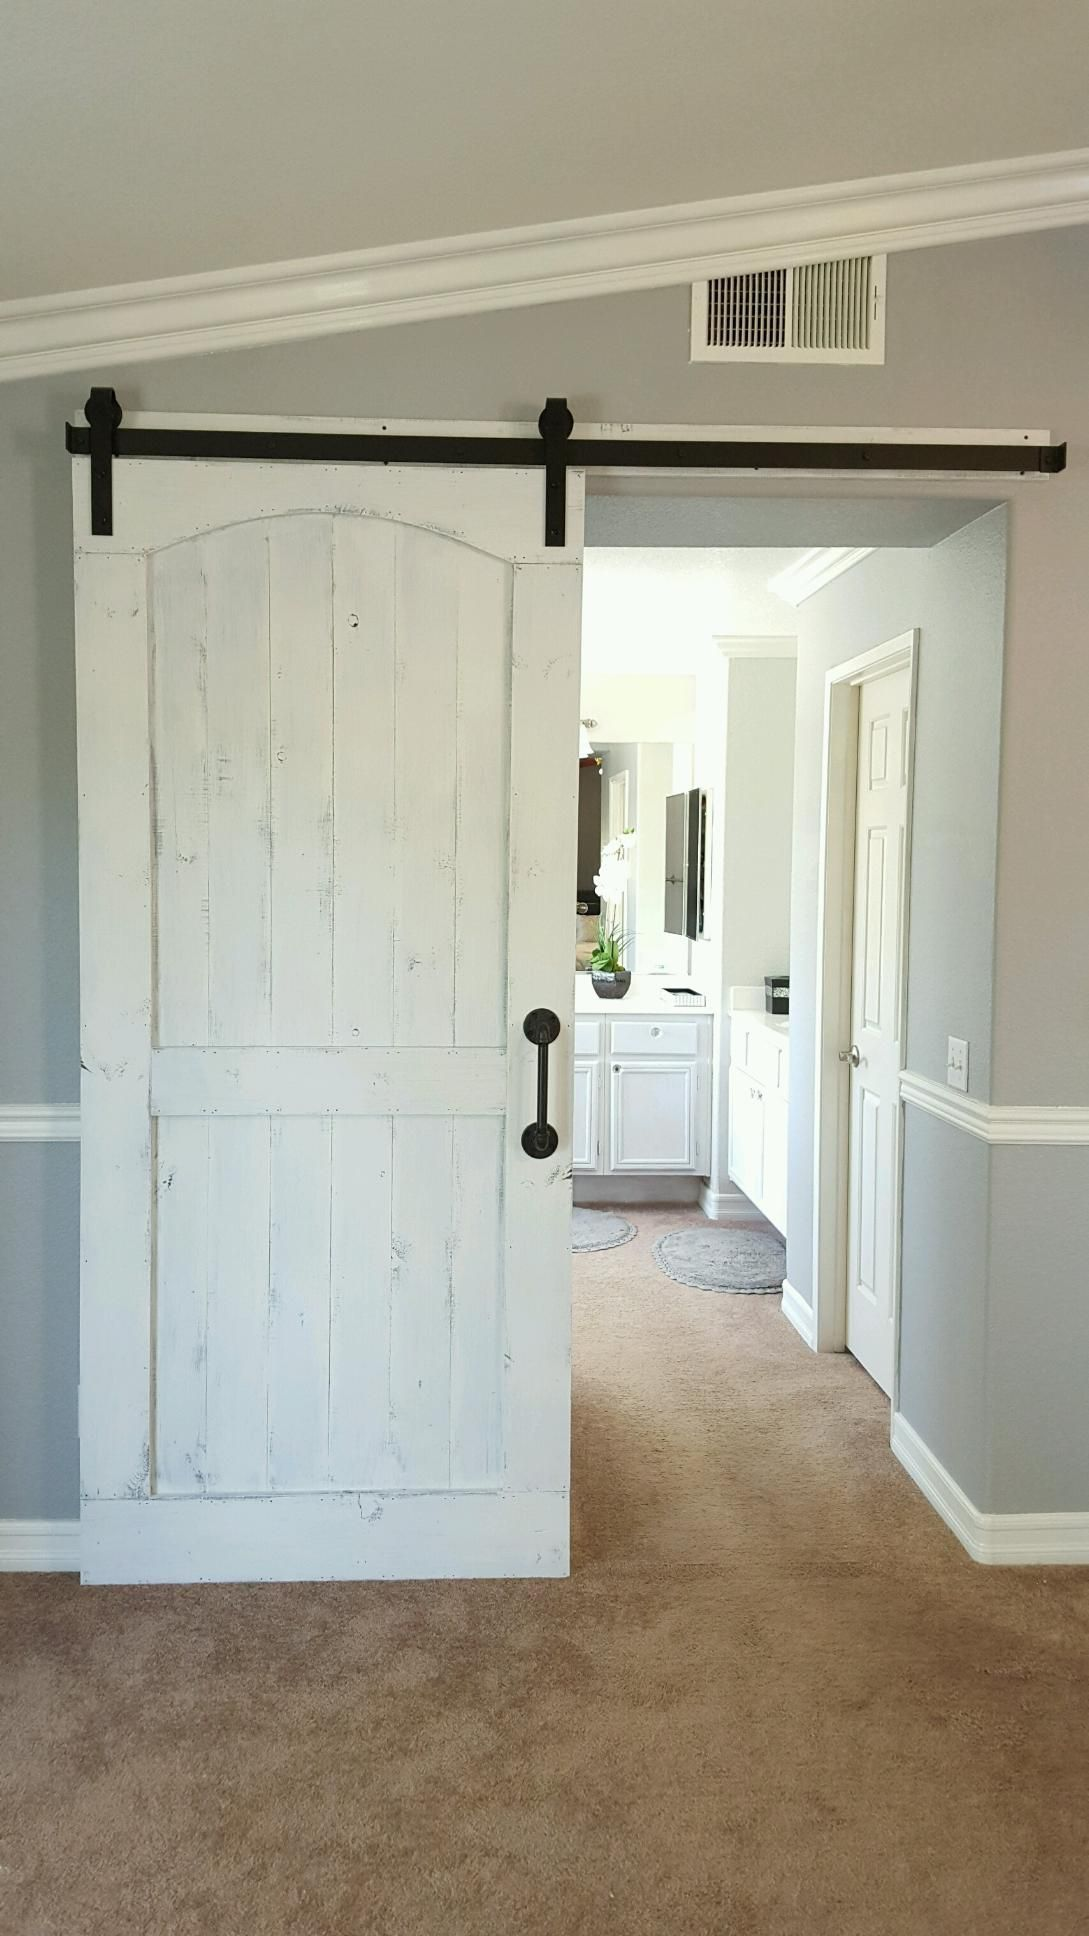 Distressed White Barn Door With Hardware For A Master Bedroom Bathroom Houseremodeling Distressed White Bedroom Furniture White Barn Door Barn Bedrooms